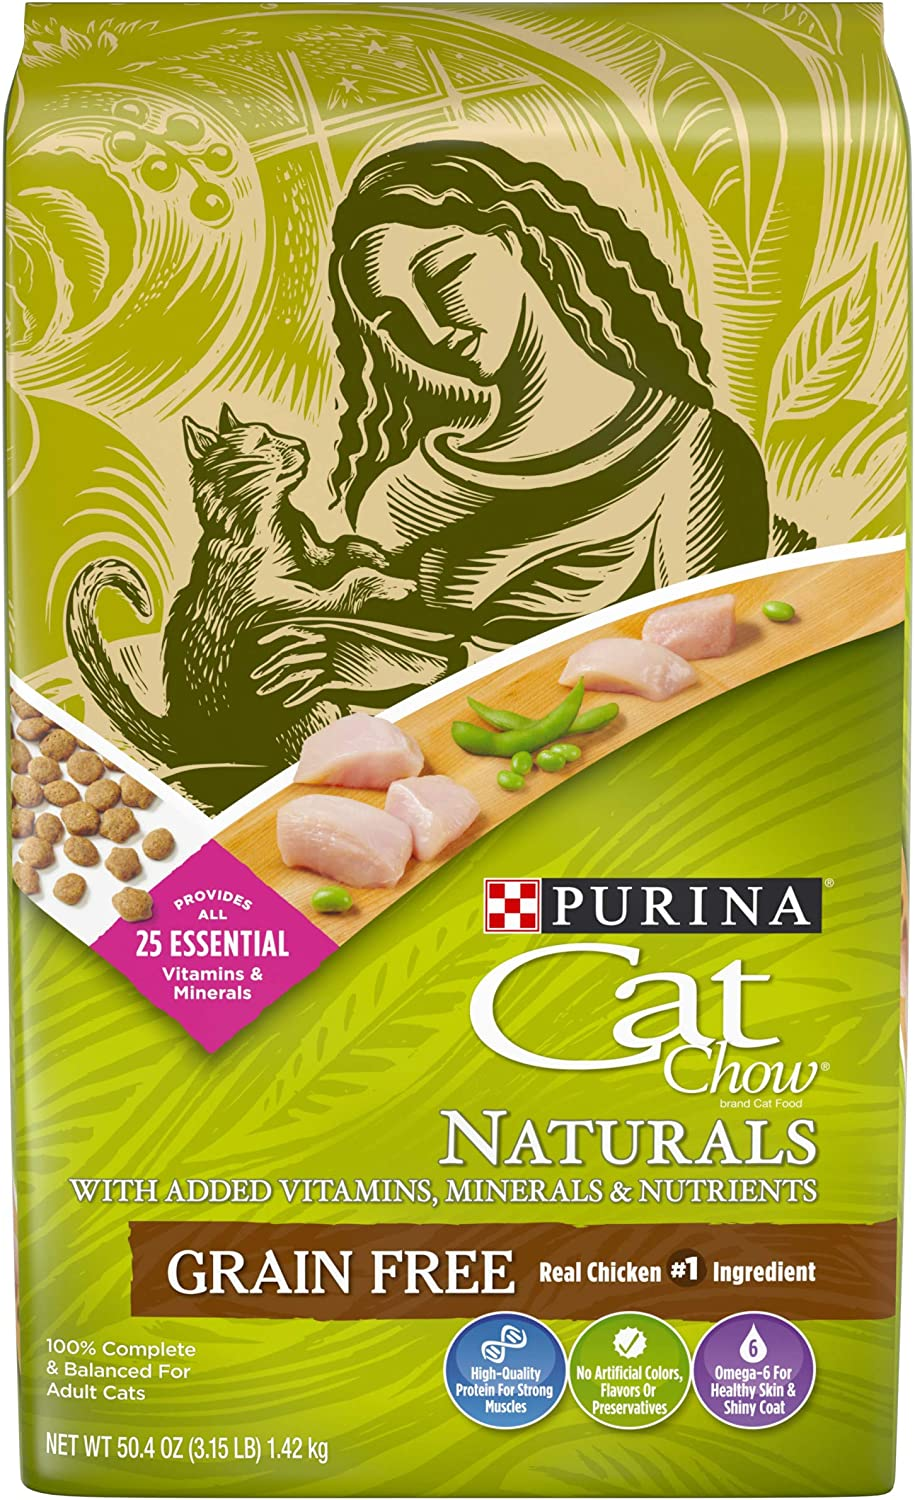 Purina Cat Chow Naturals Grain-Free with Real Chicken Adult Dry Cat Food